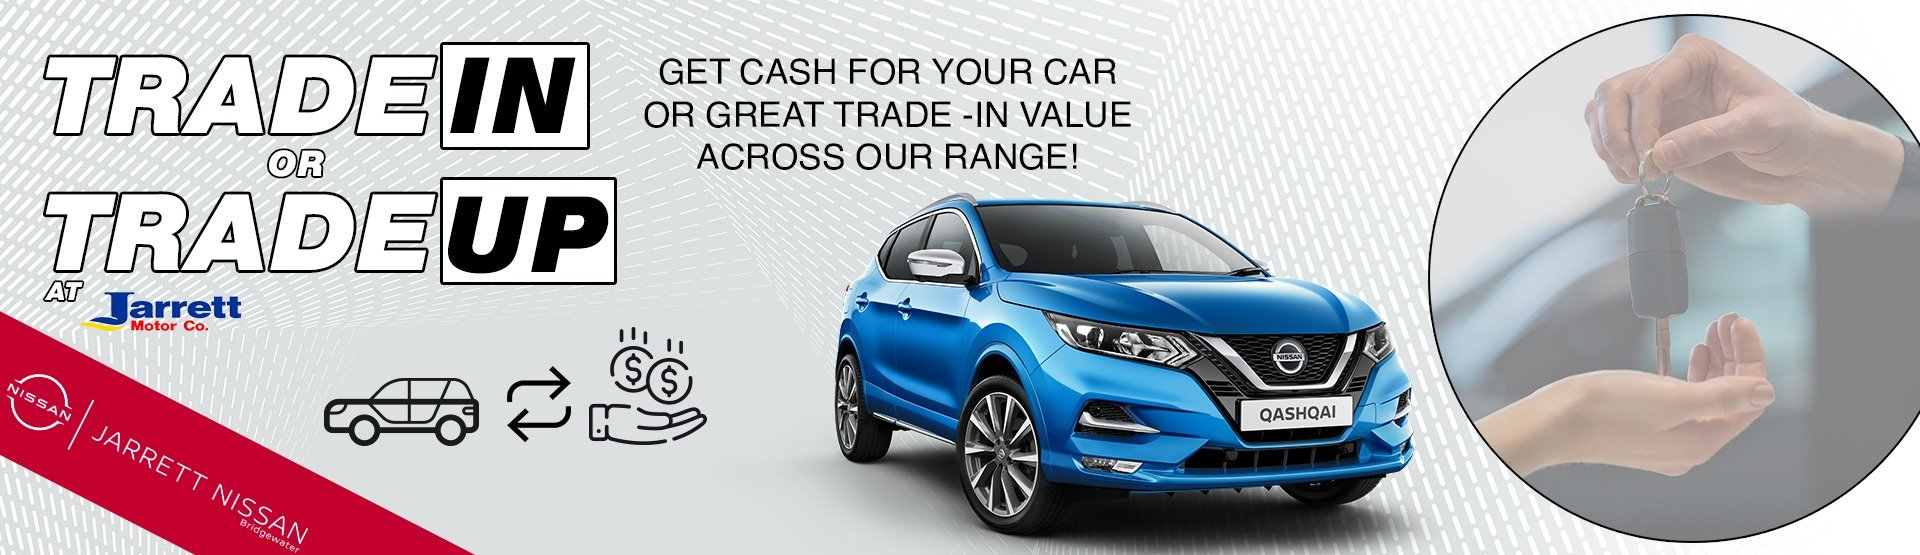 Trade-In Value at Jarrett Nissan